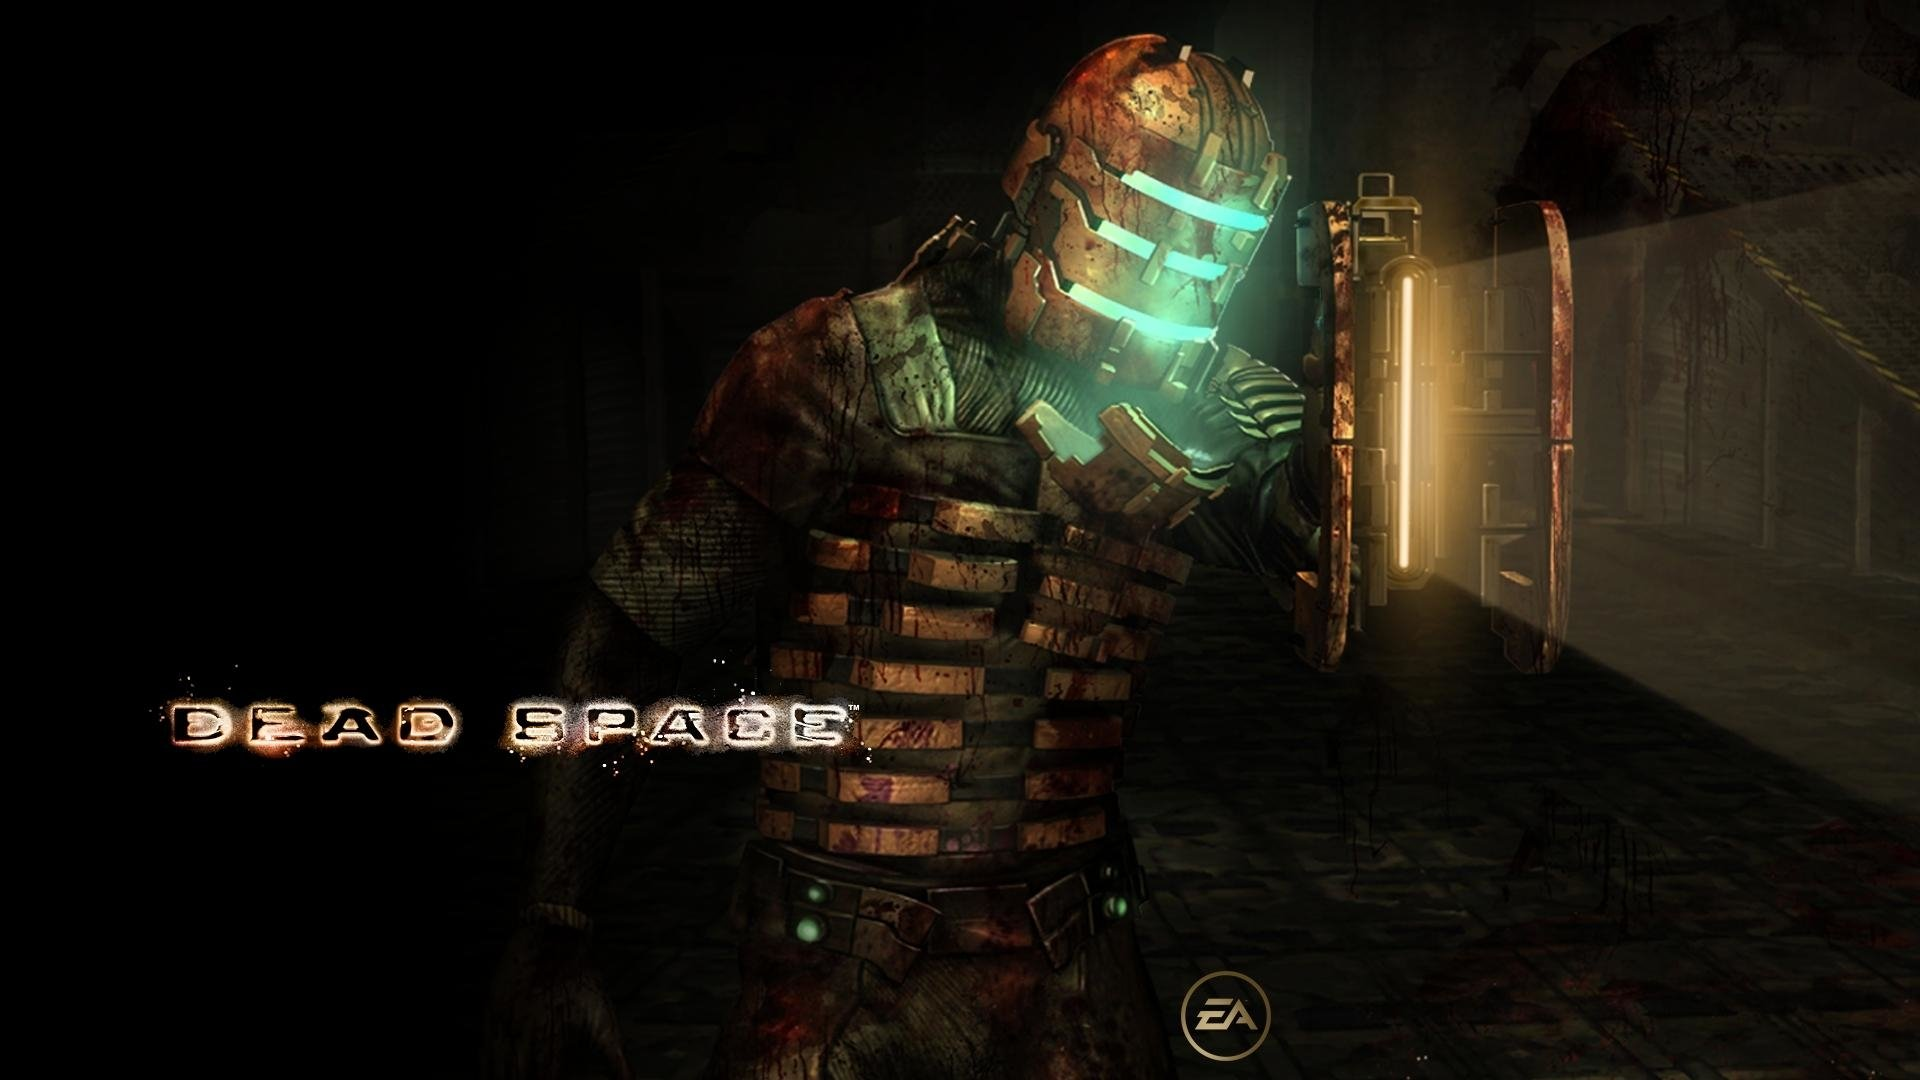 Hd Game Wallpaper Widescreen Dead Space Full Hd Wallpaper And Background Image